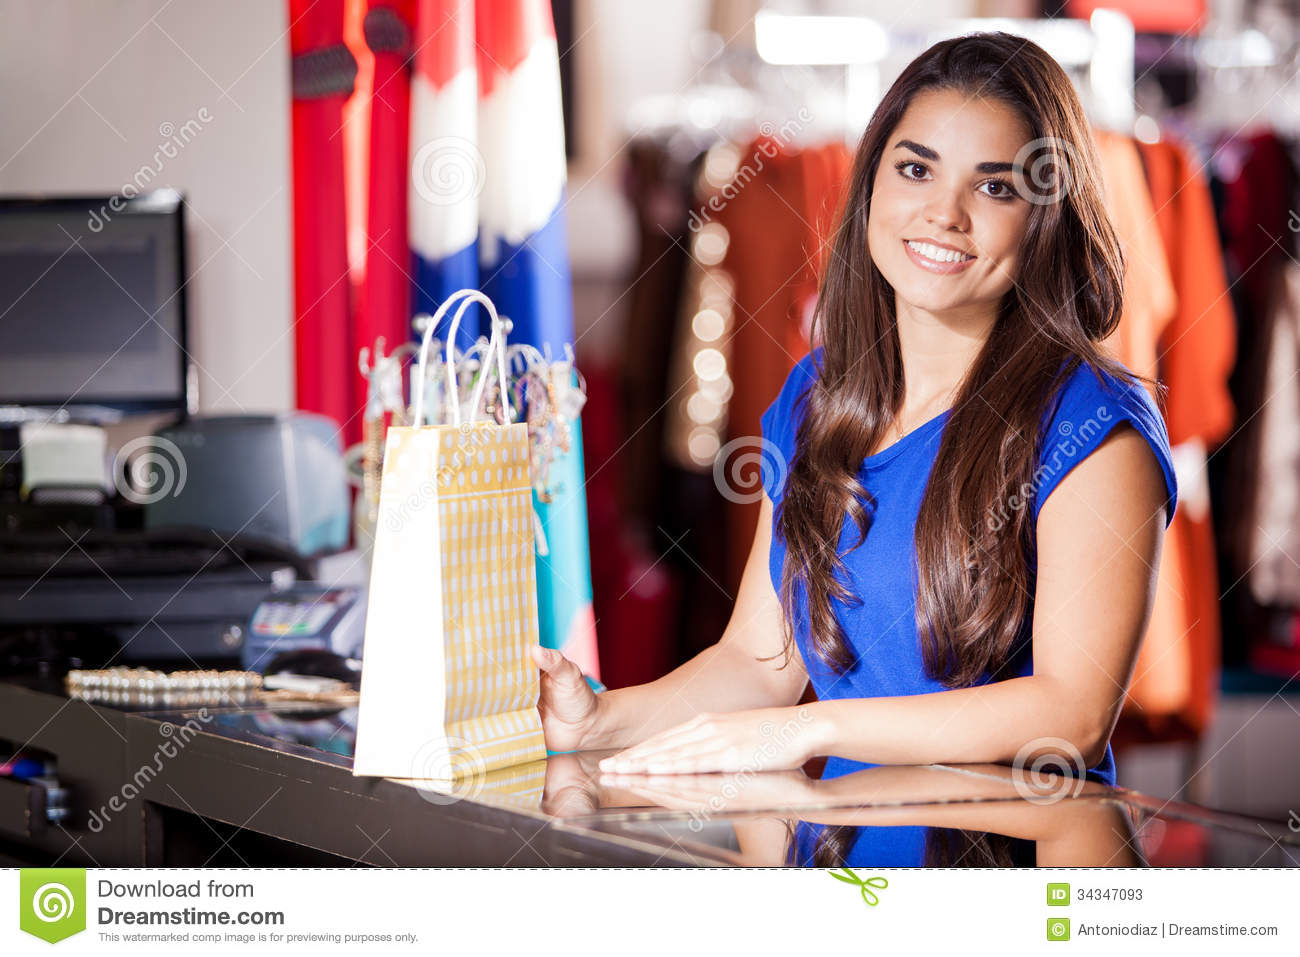 Clothing stores for young women